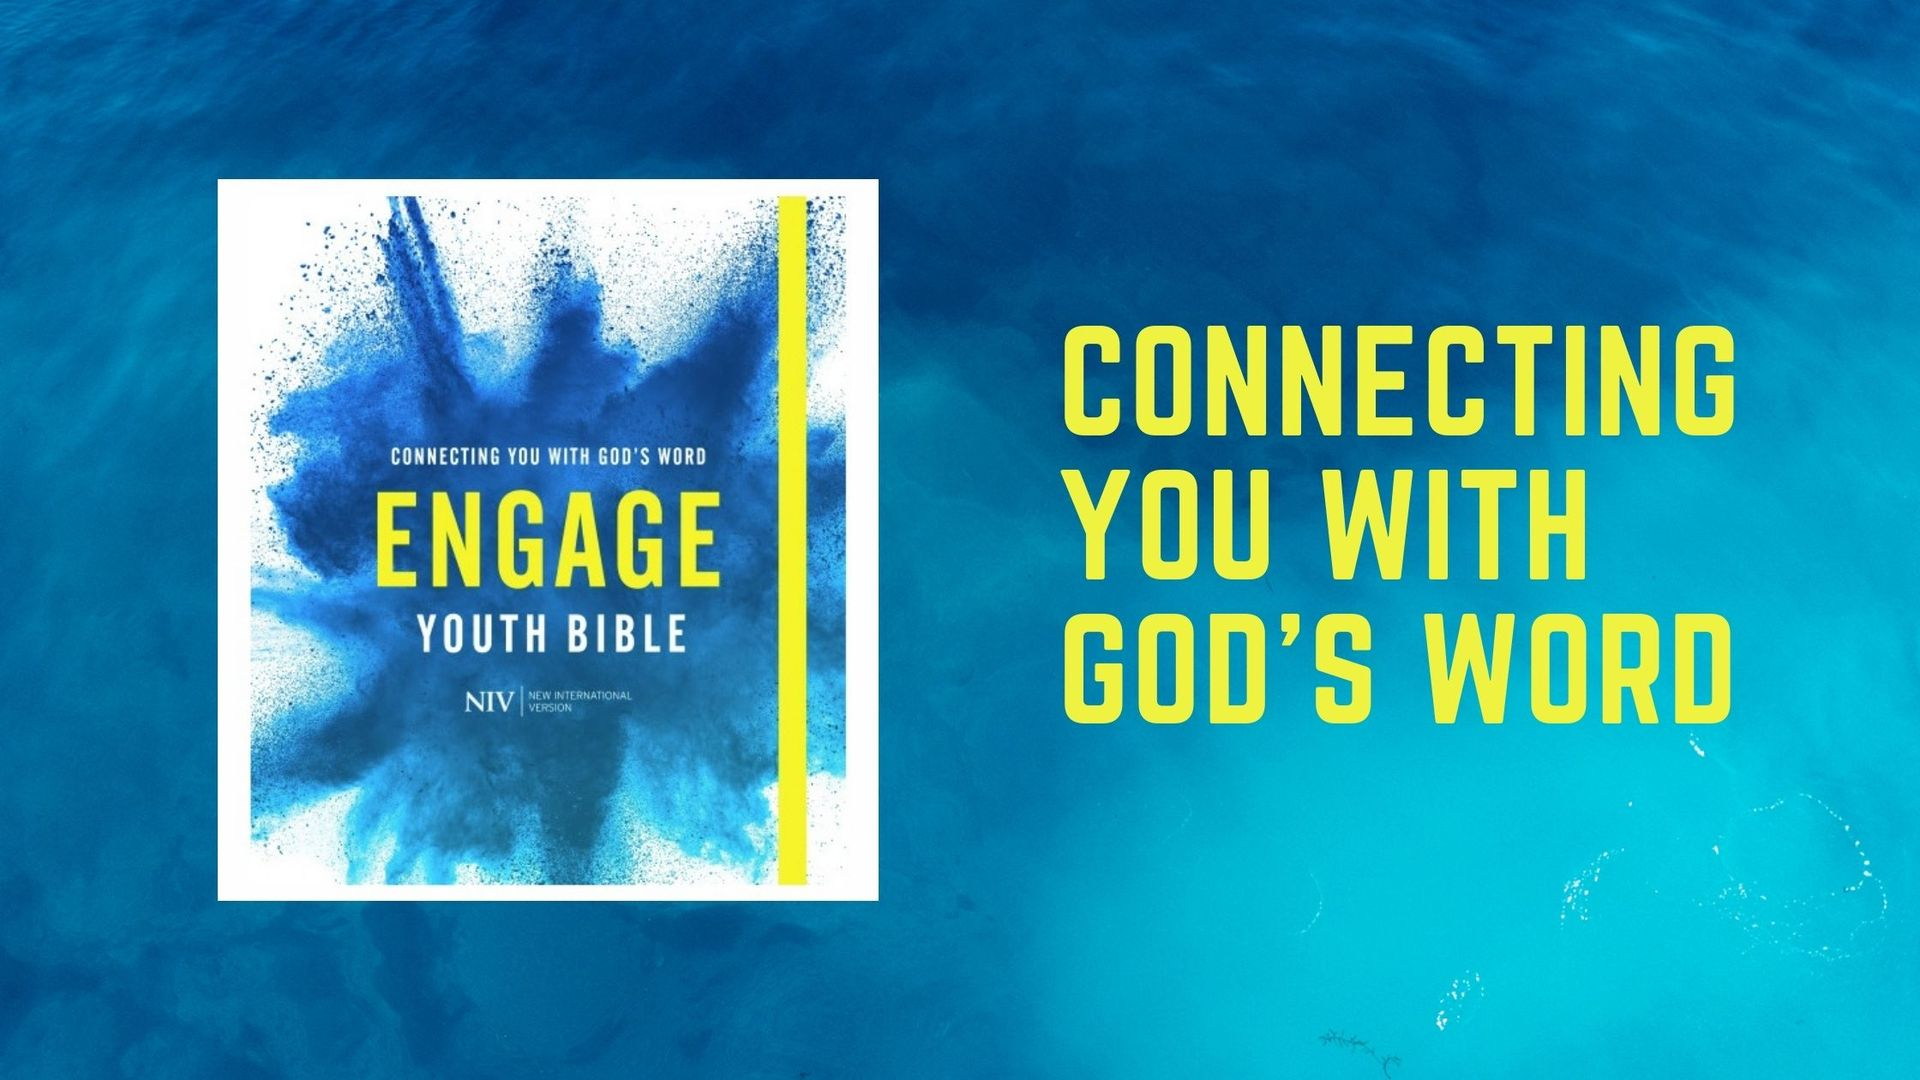 New NIV Youth Bible ENGAGE